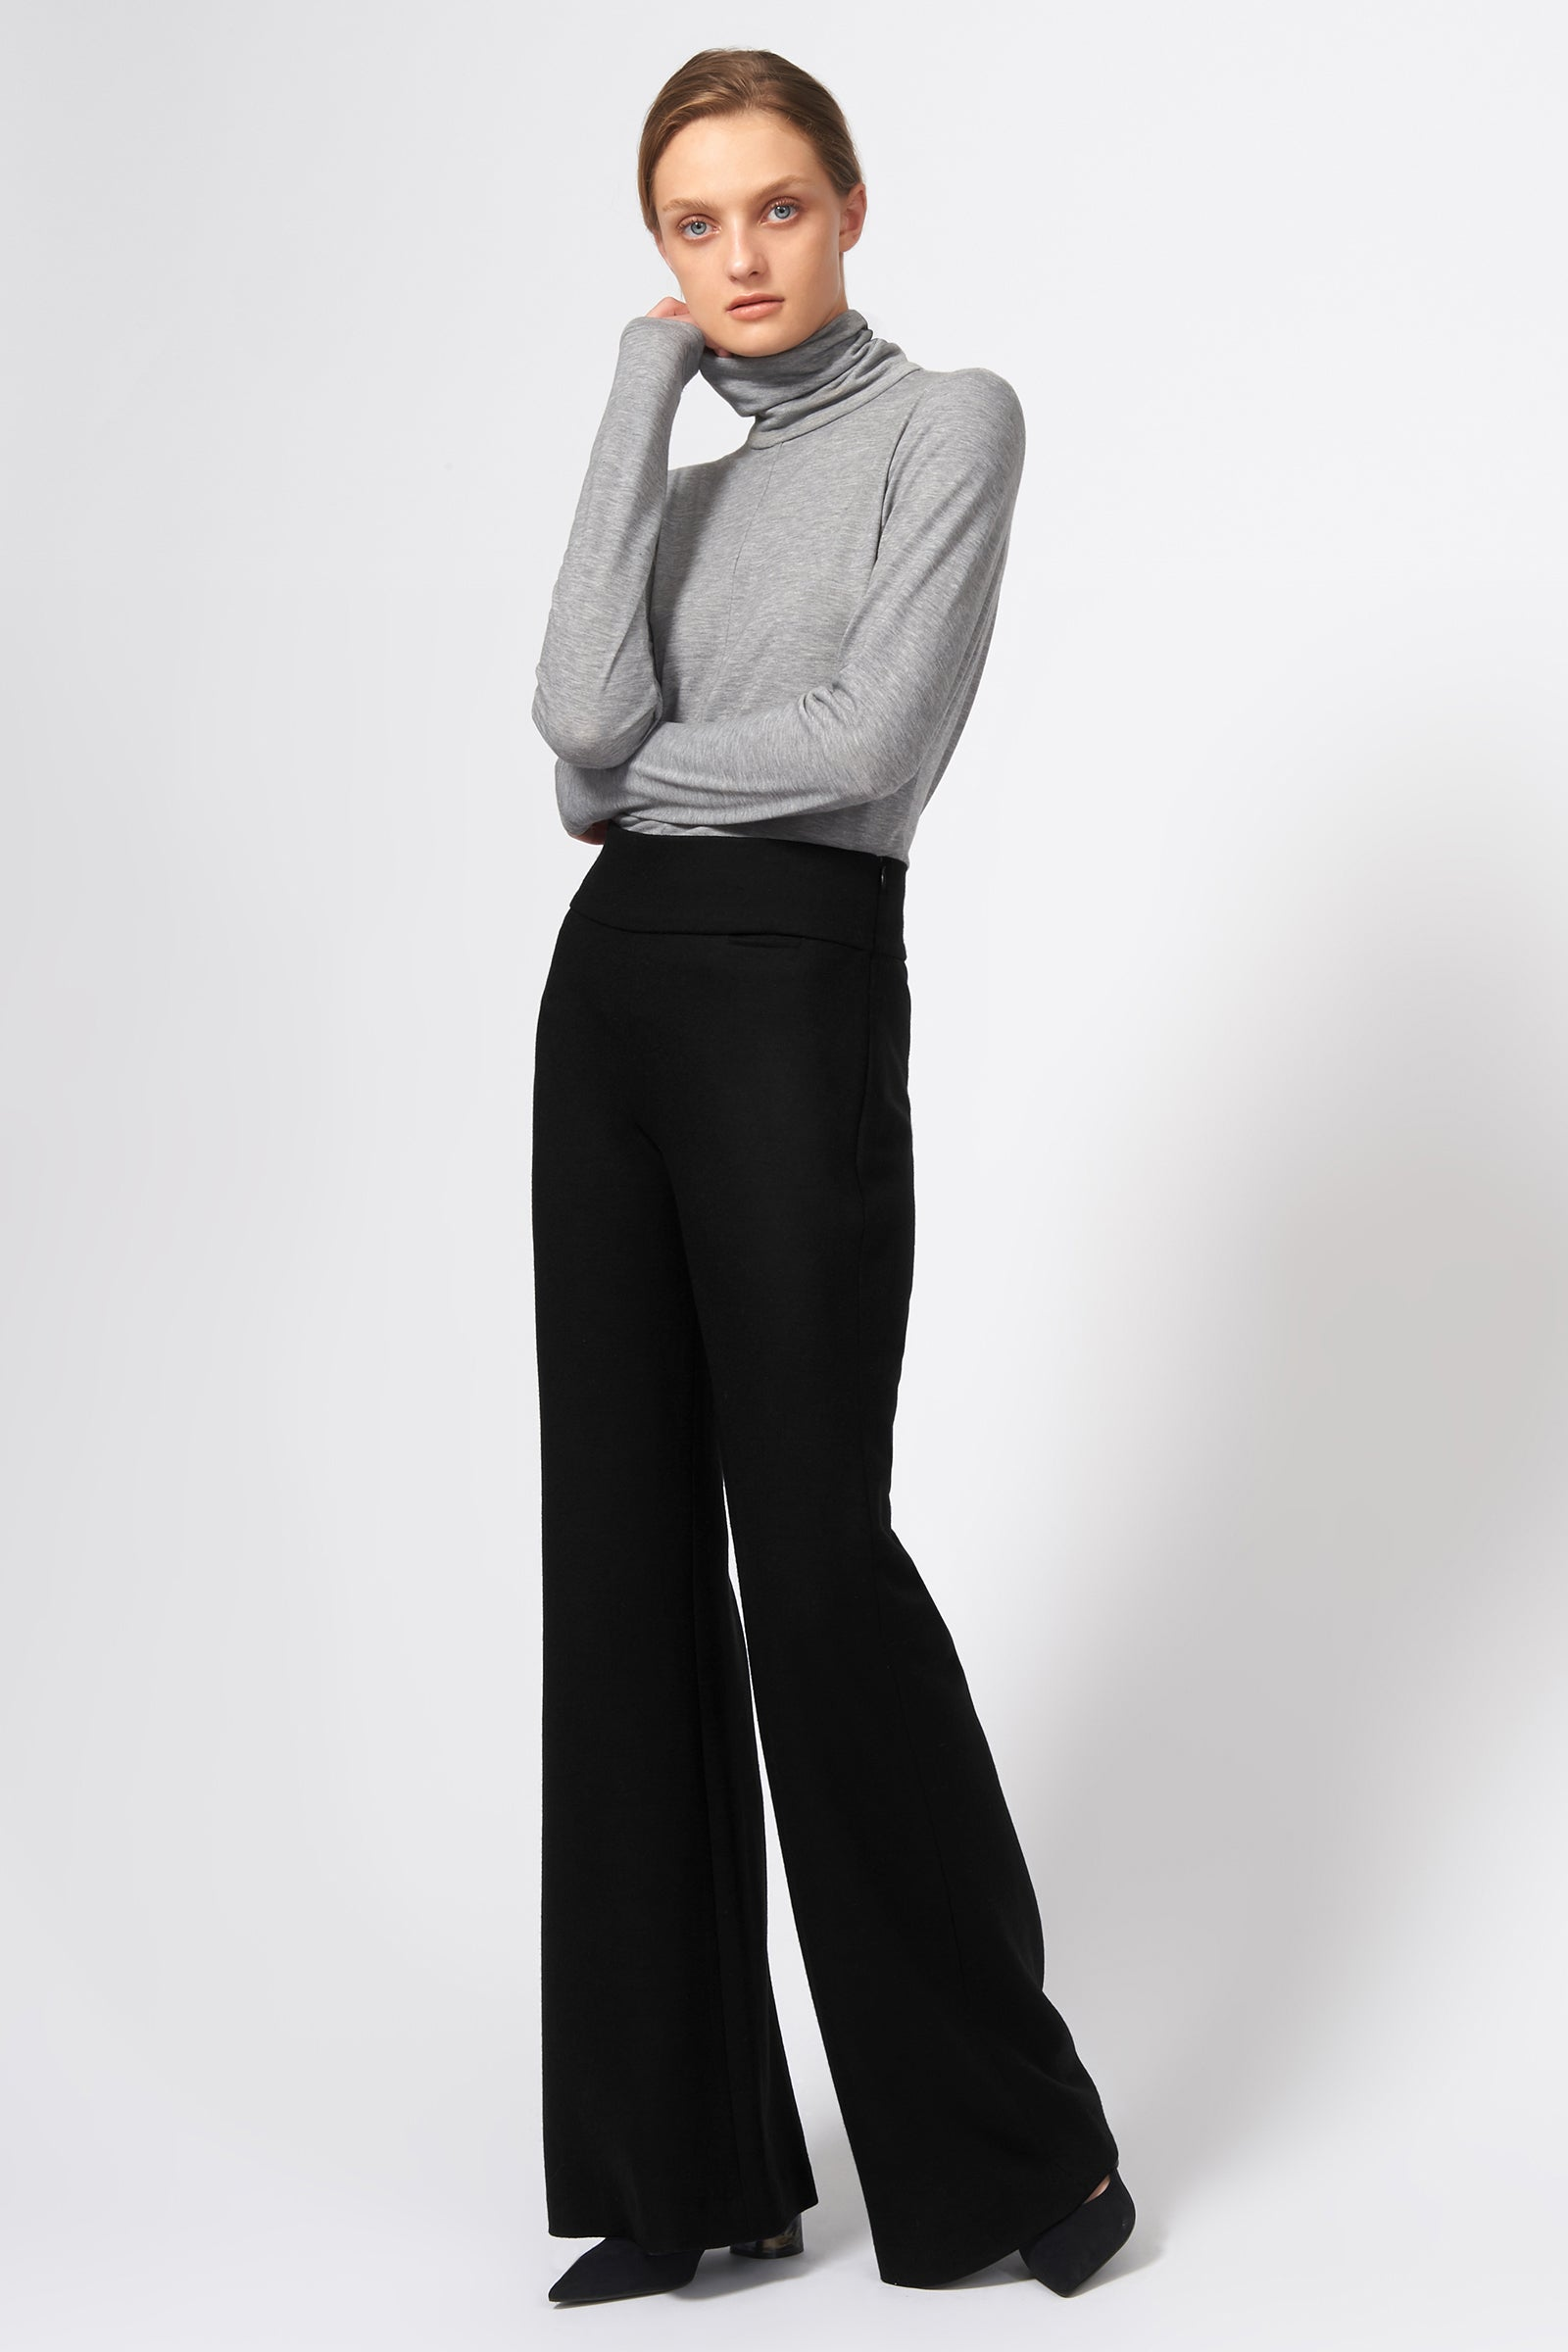 Kal Rieman Felted Jersey Wide Leg Pant in Black on Model Front Full View